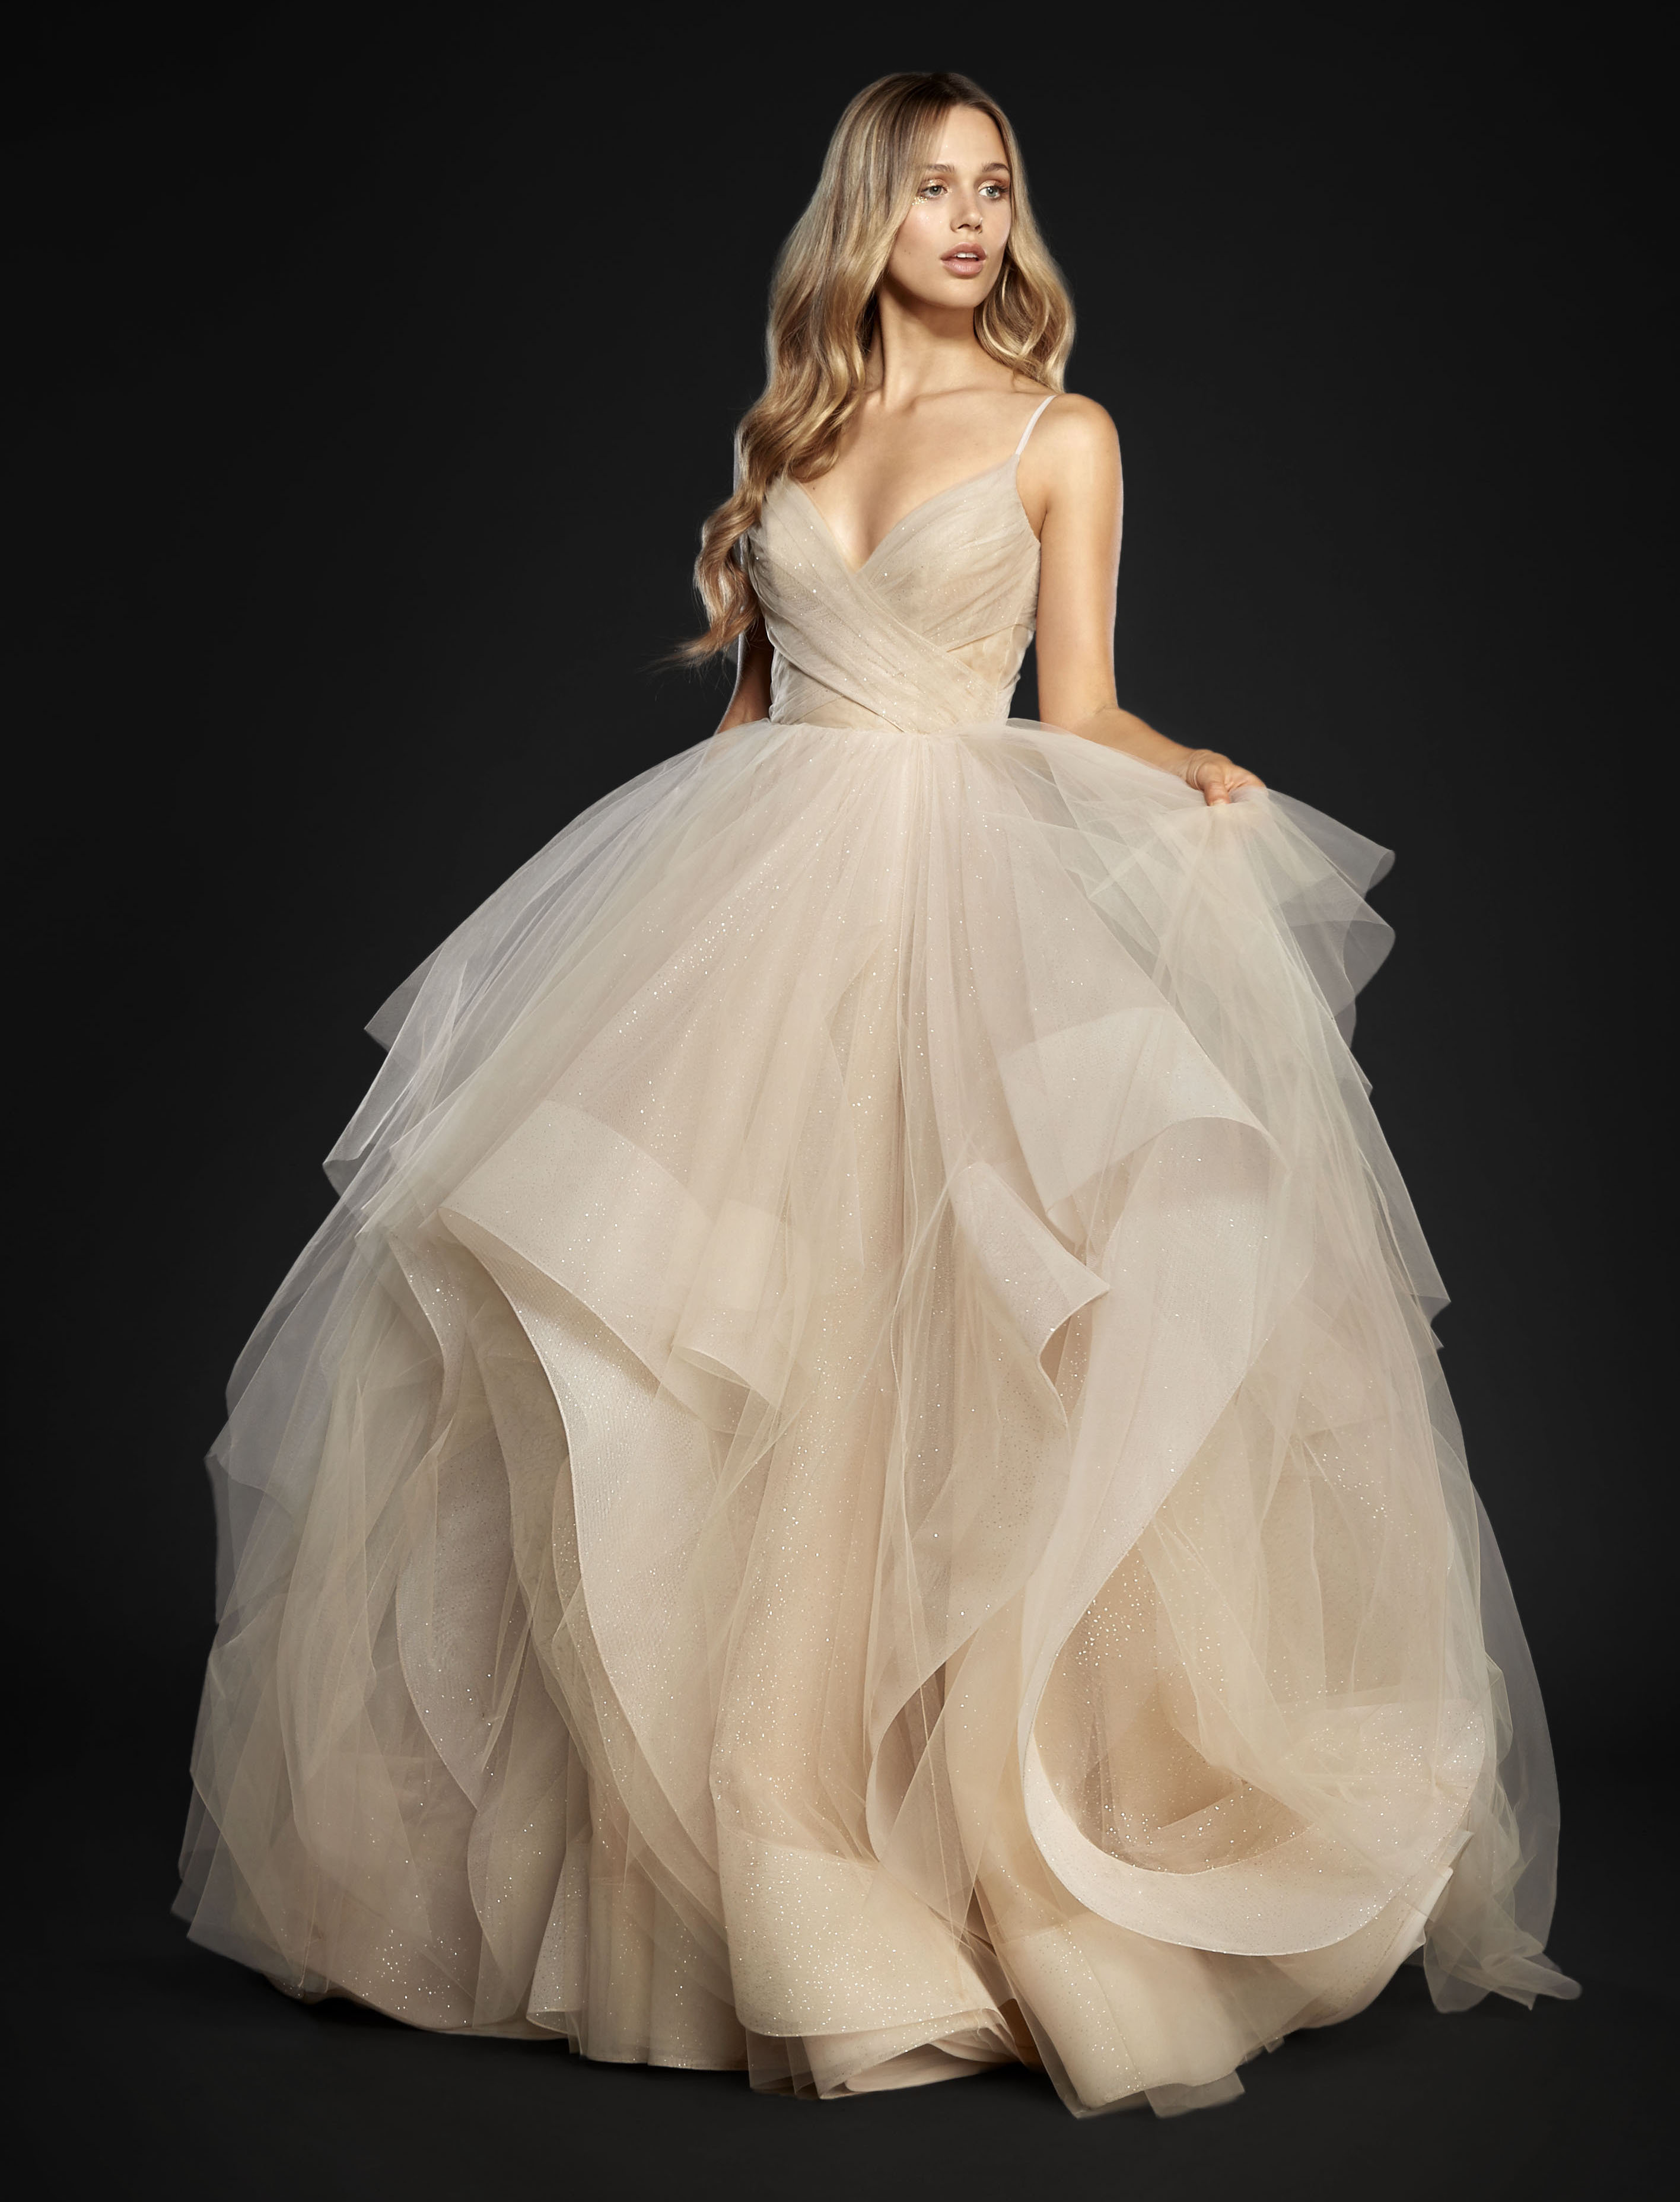 Bridal gowns and wedding dresses by jlm couture style 6709 chandon style 6709 chandon lookbook front ombrellifo Choice Image